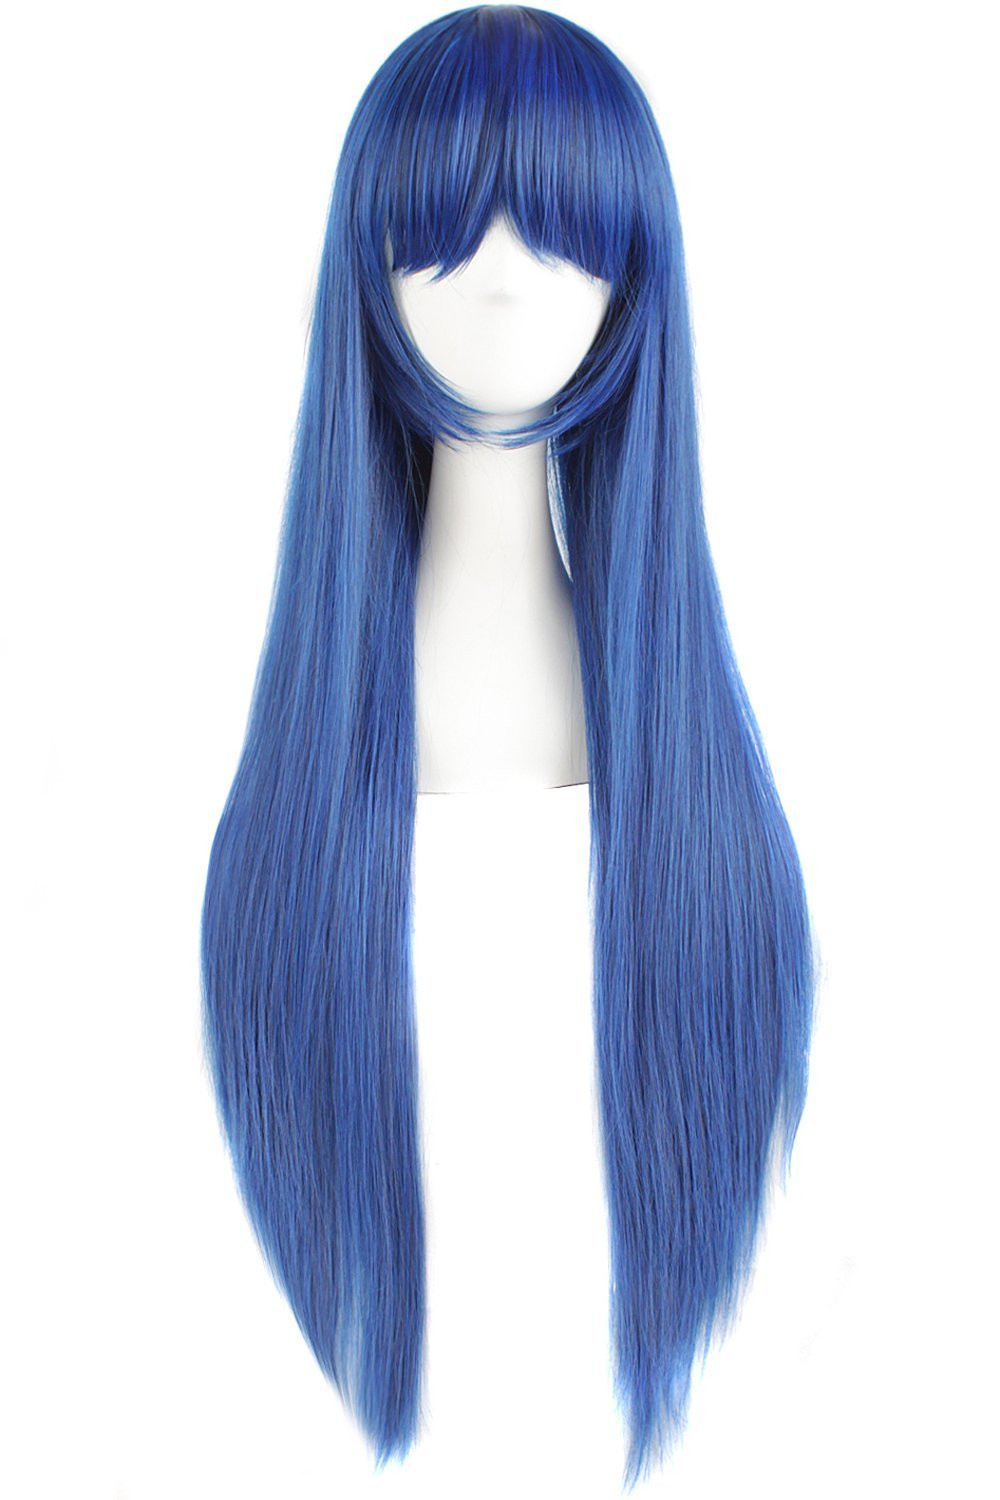 """MapofBeauty 32"""" 80cm Long Straight Anime Costume Cosplay Wig Party Wig (Dark Blue/ Black)"""